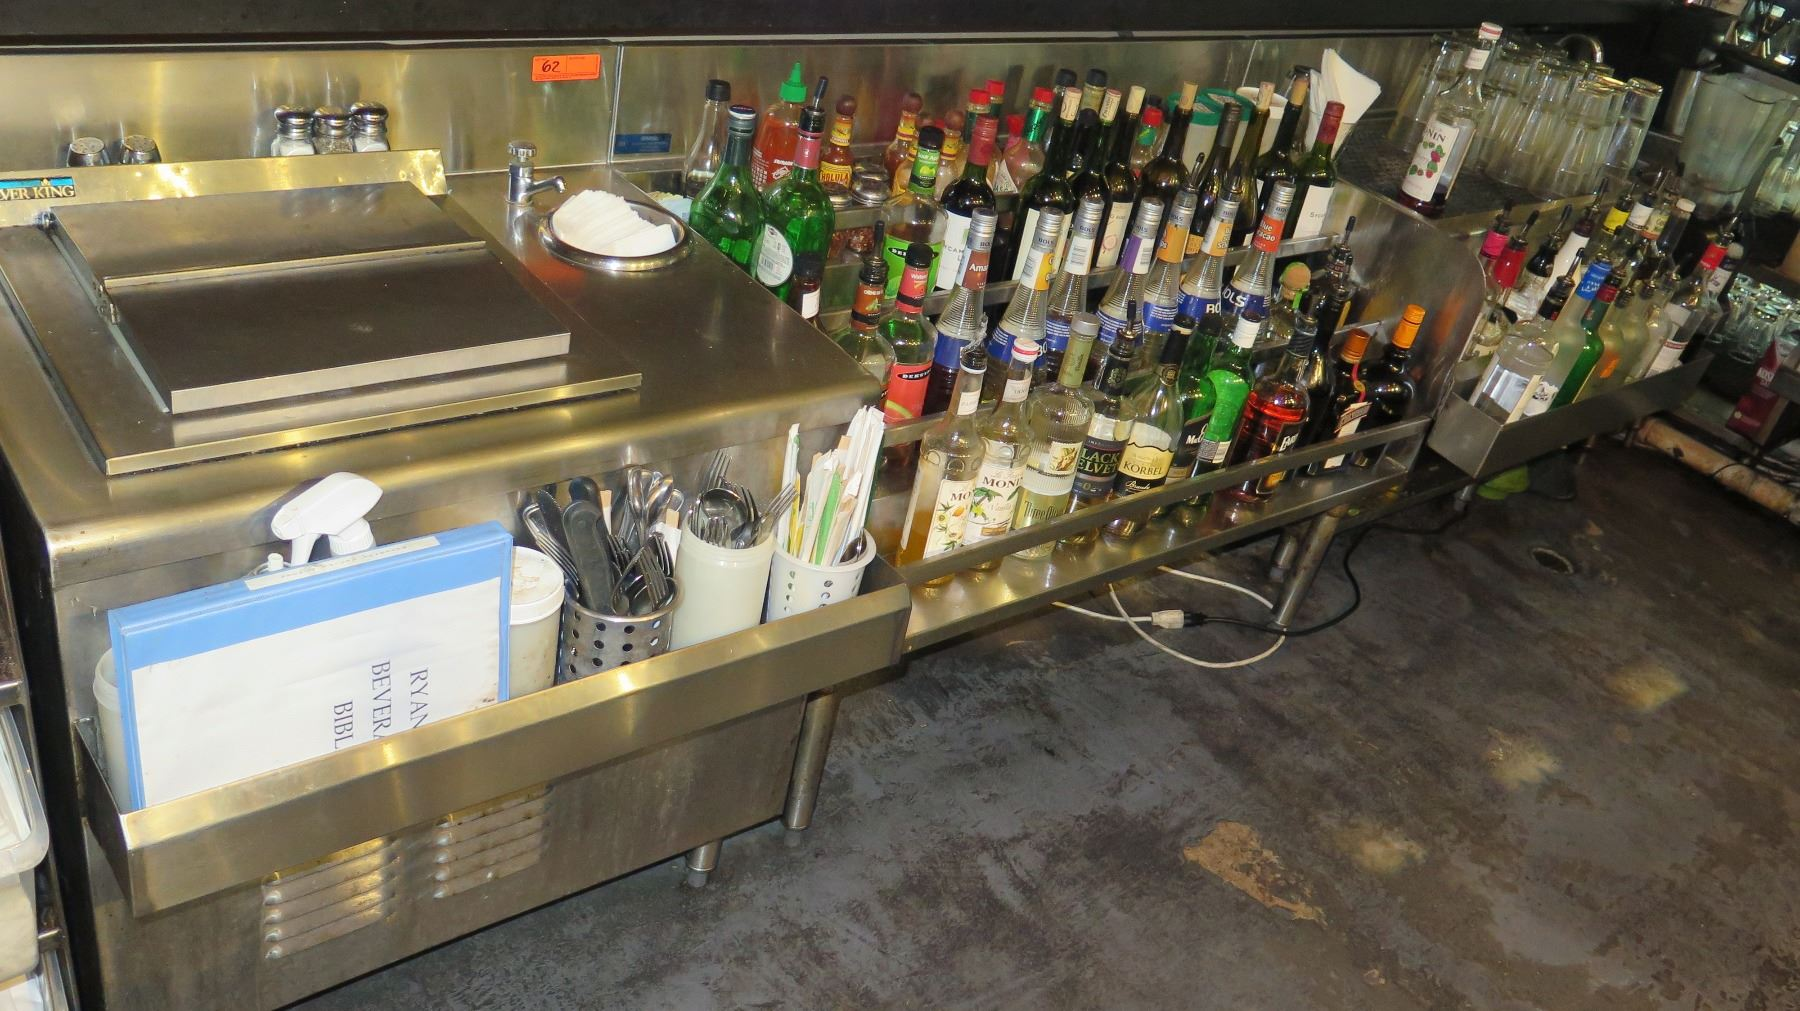 Silver King Chest Freezer, National Bar Systems Multi-Tiered